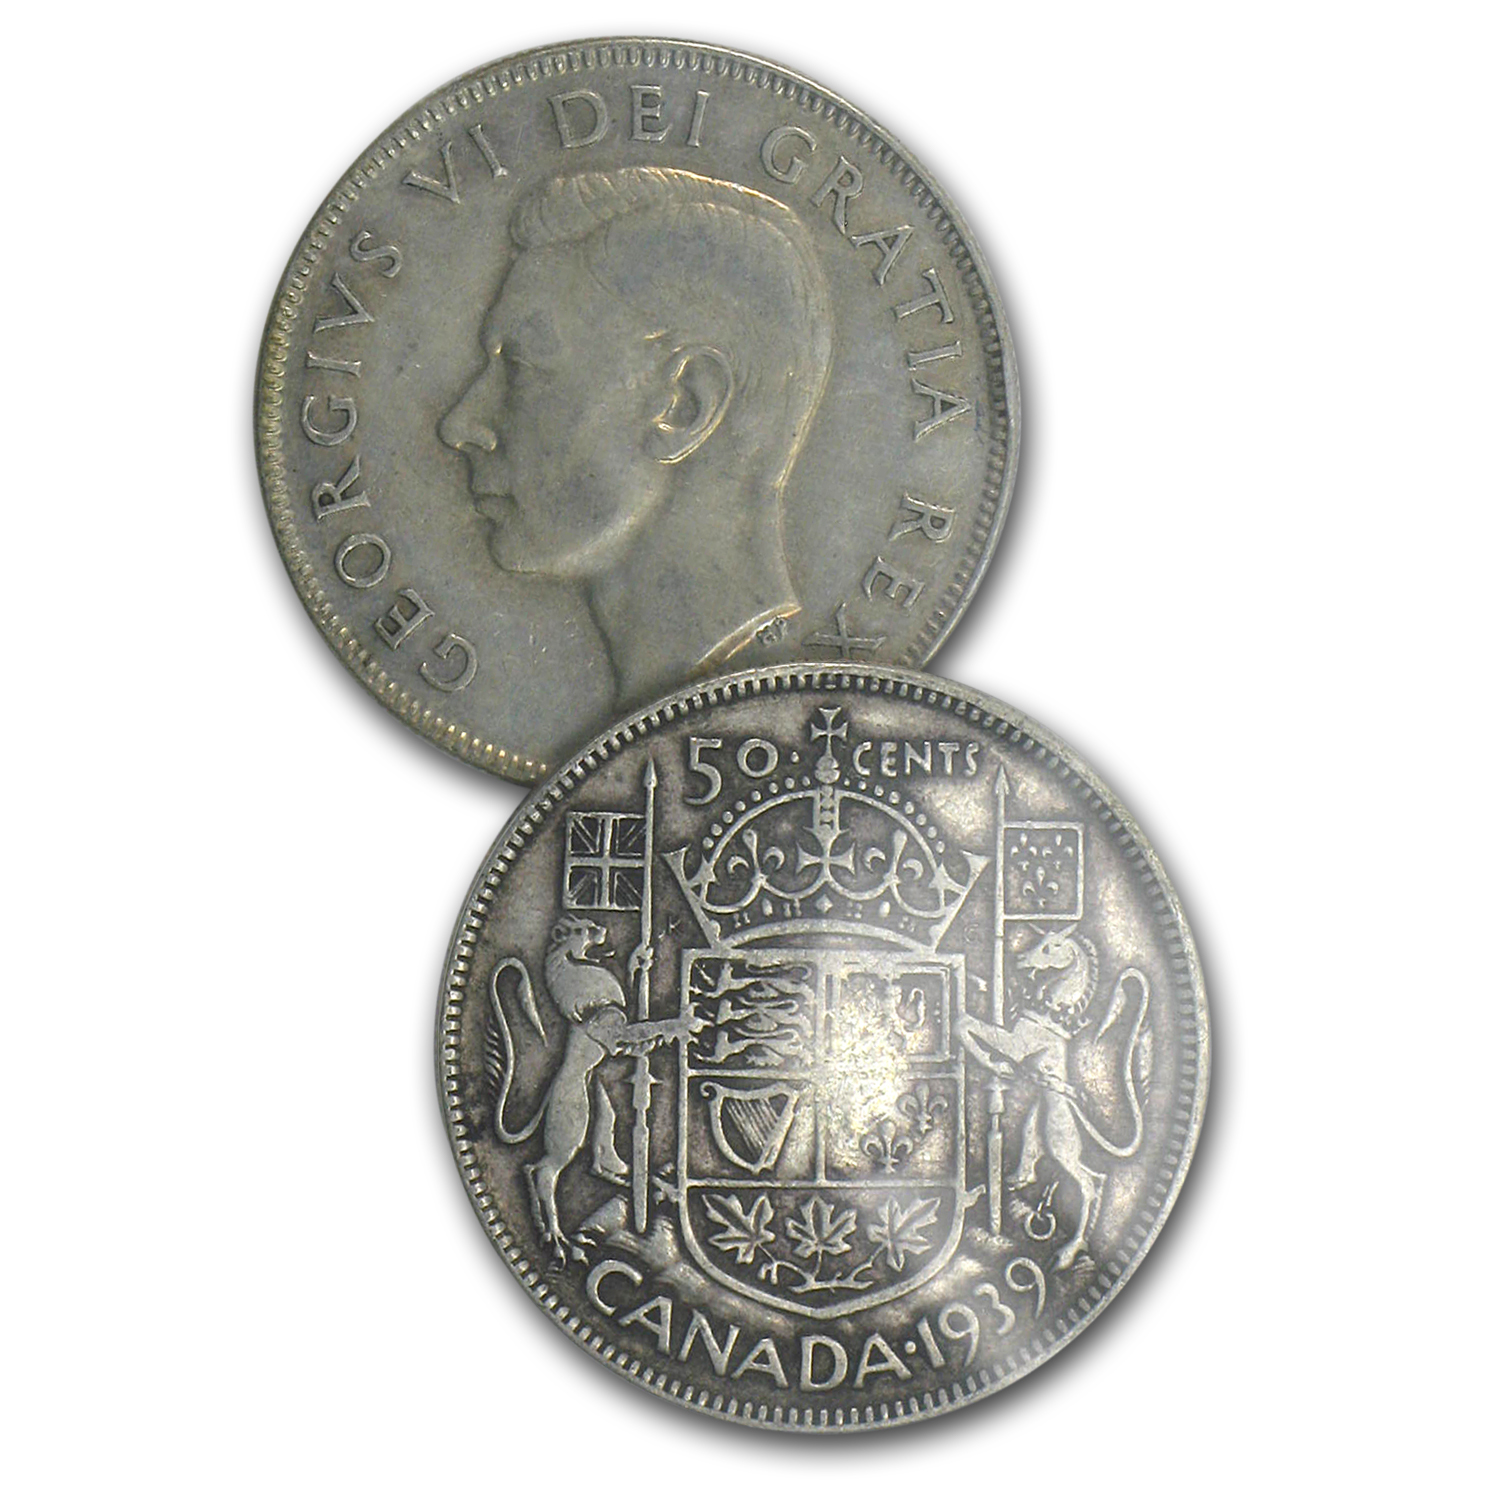 Canada 80% Silver Coins - $1 CAD Face Value